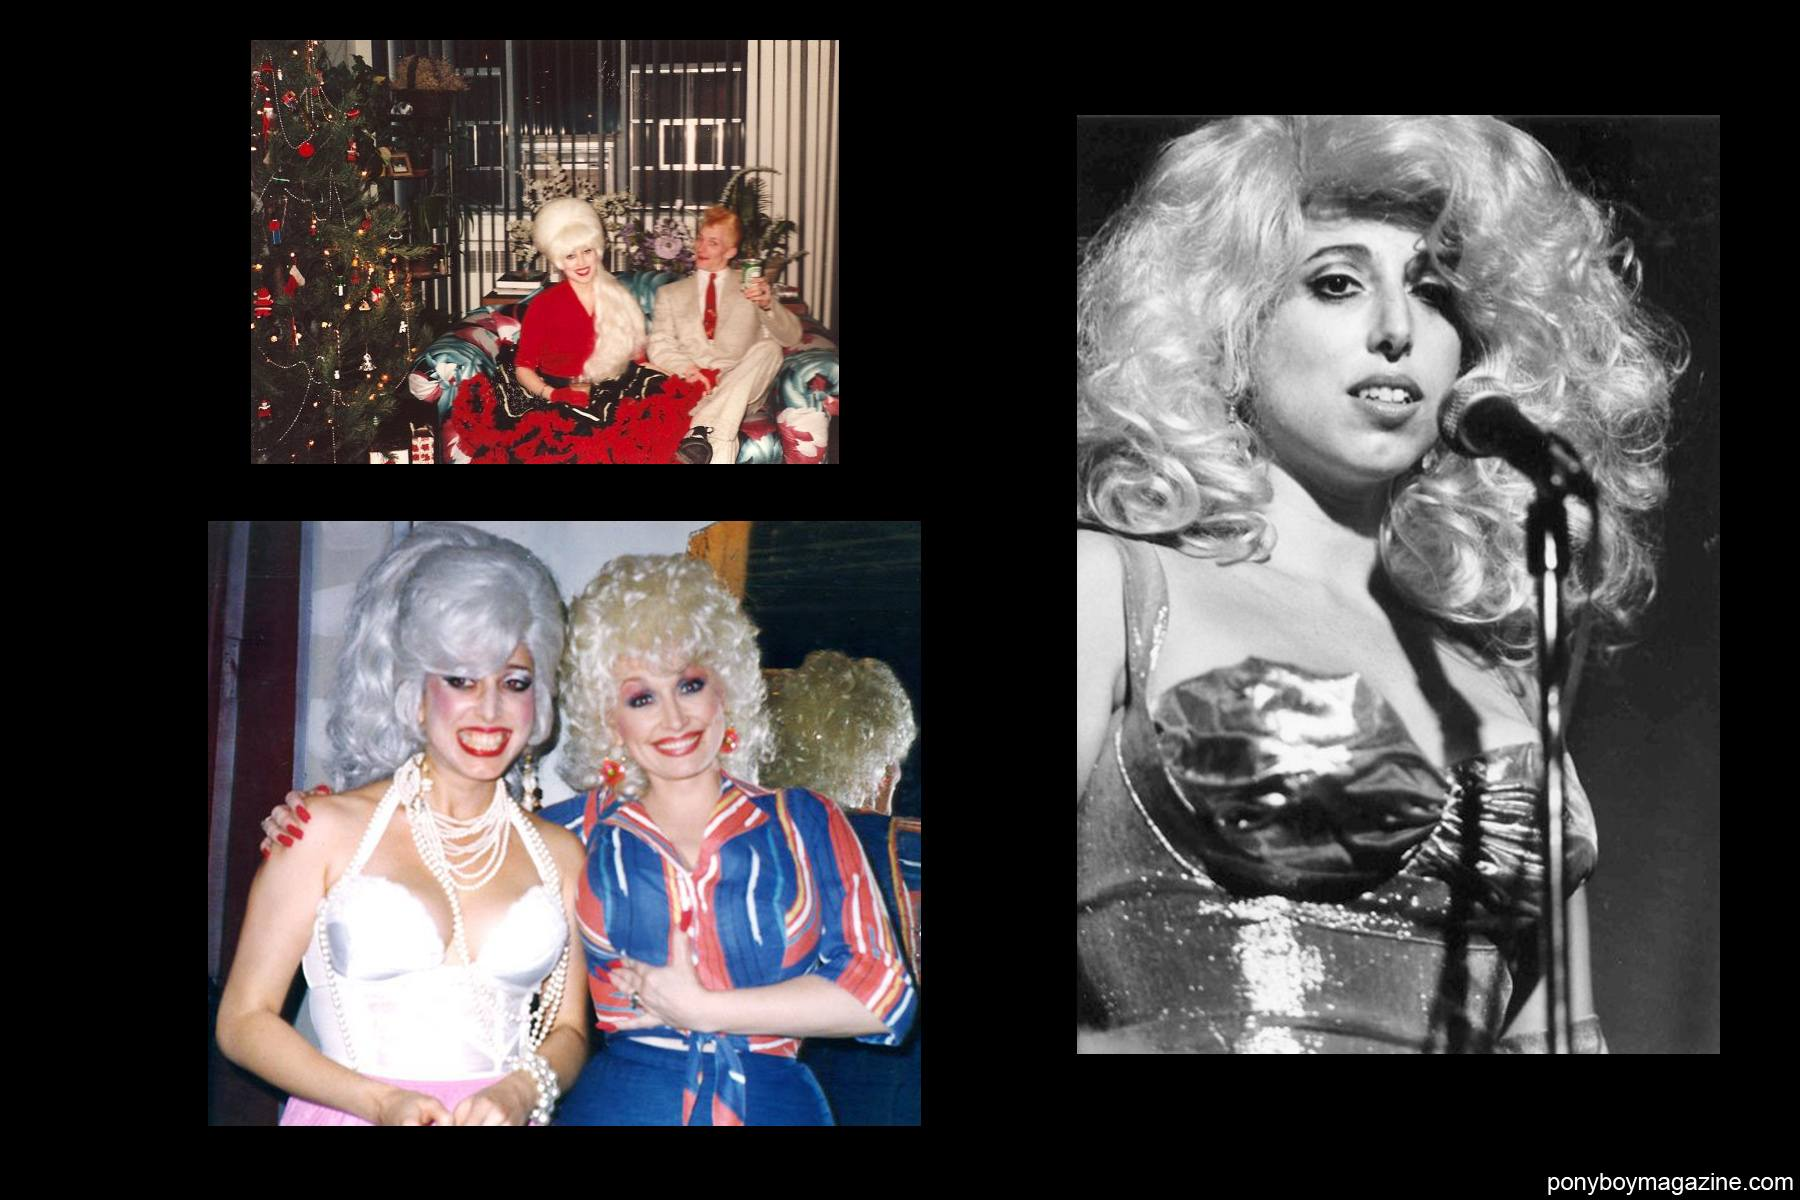 Photos of designer Katy K and Dolly Parton for Ponyboy Magazine.